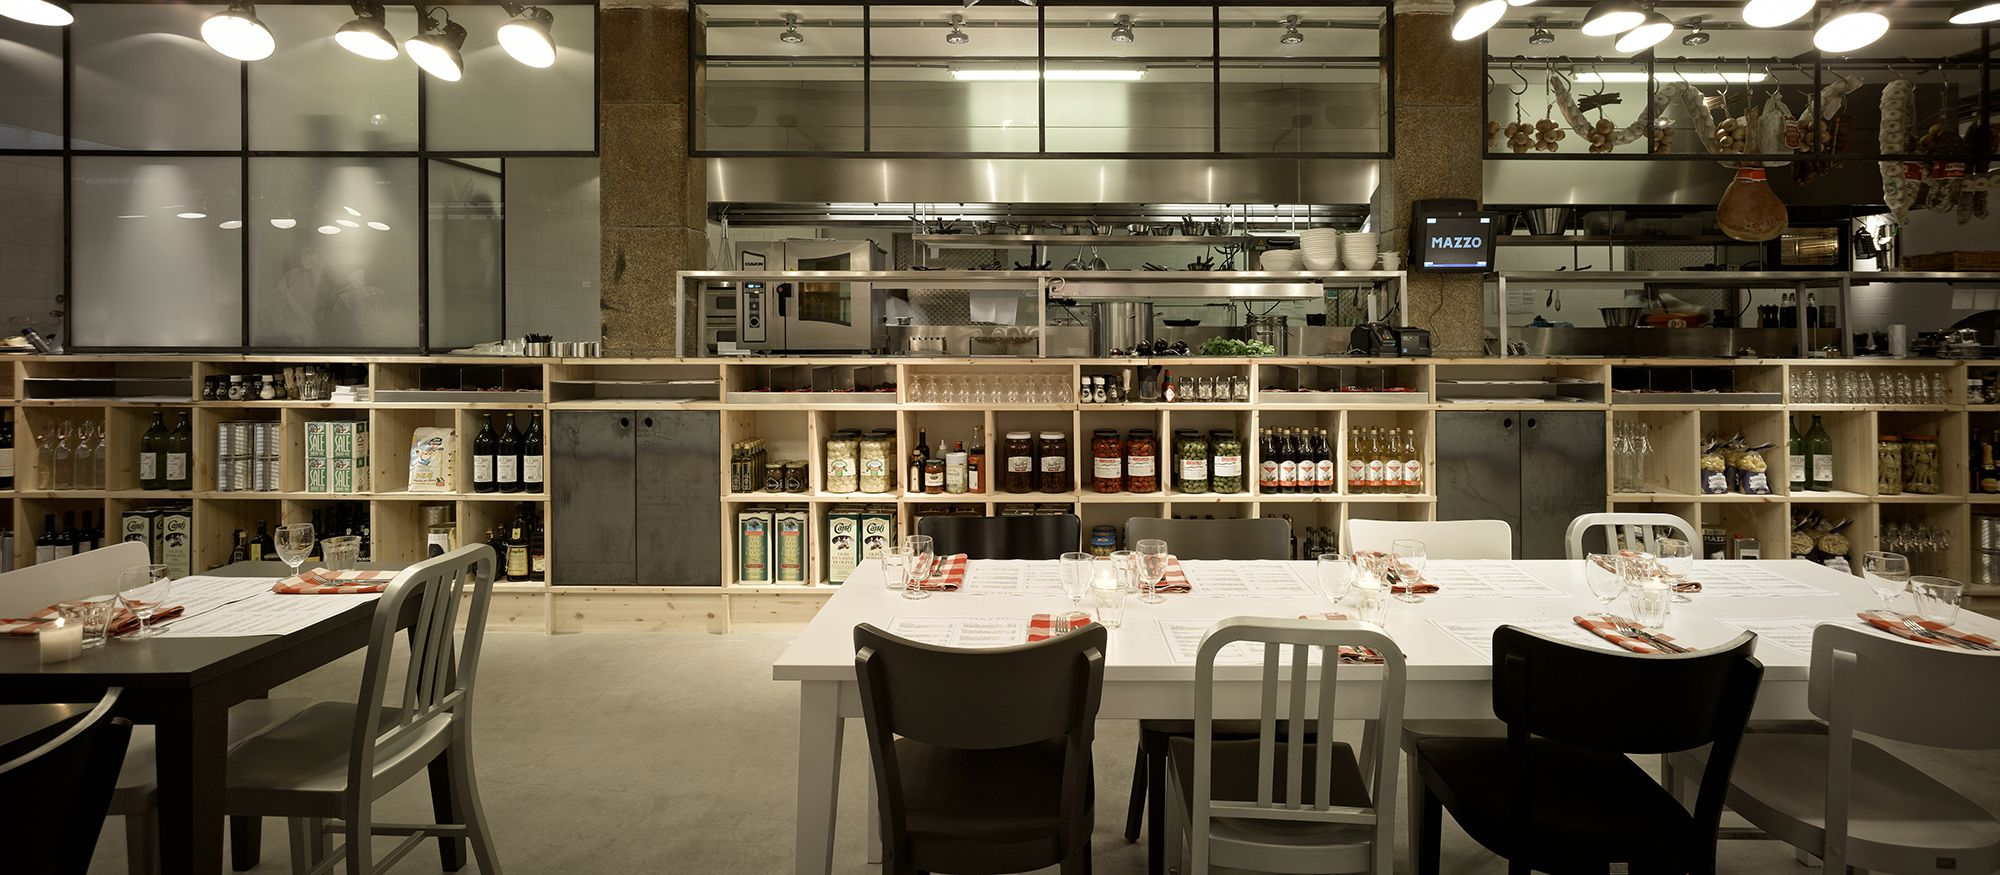 Mazzo by concrete caandesign architecture and home for Cafe mazzo